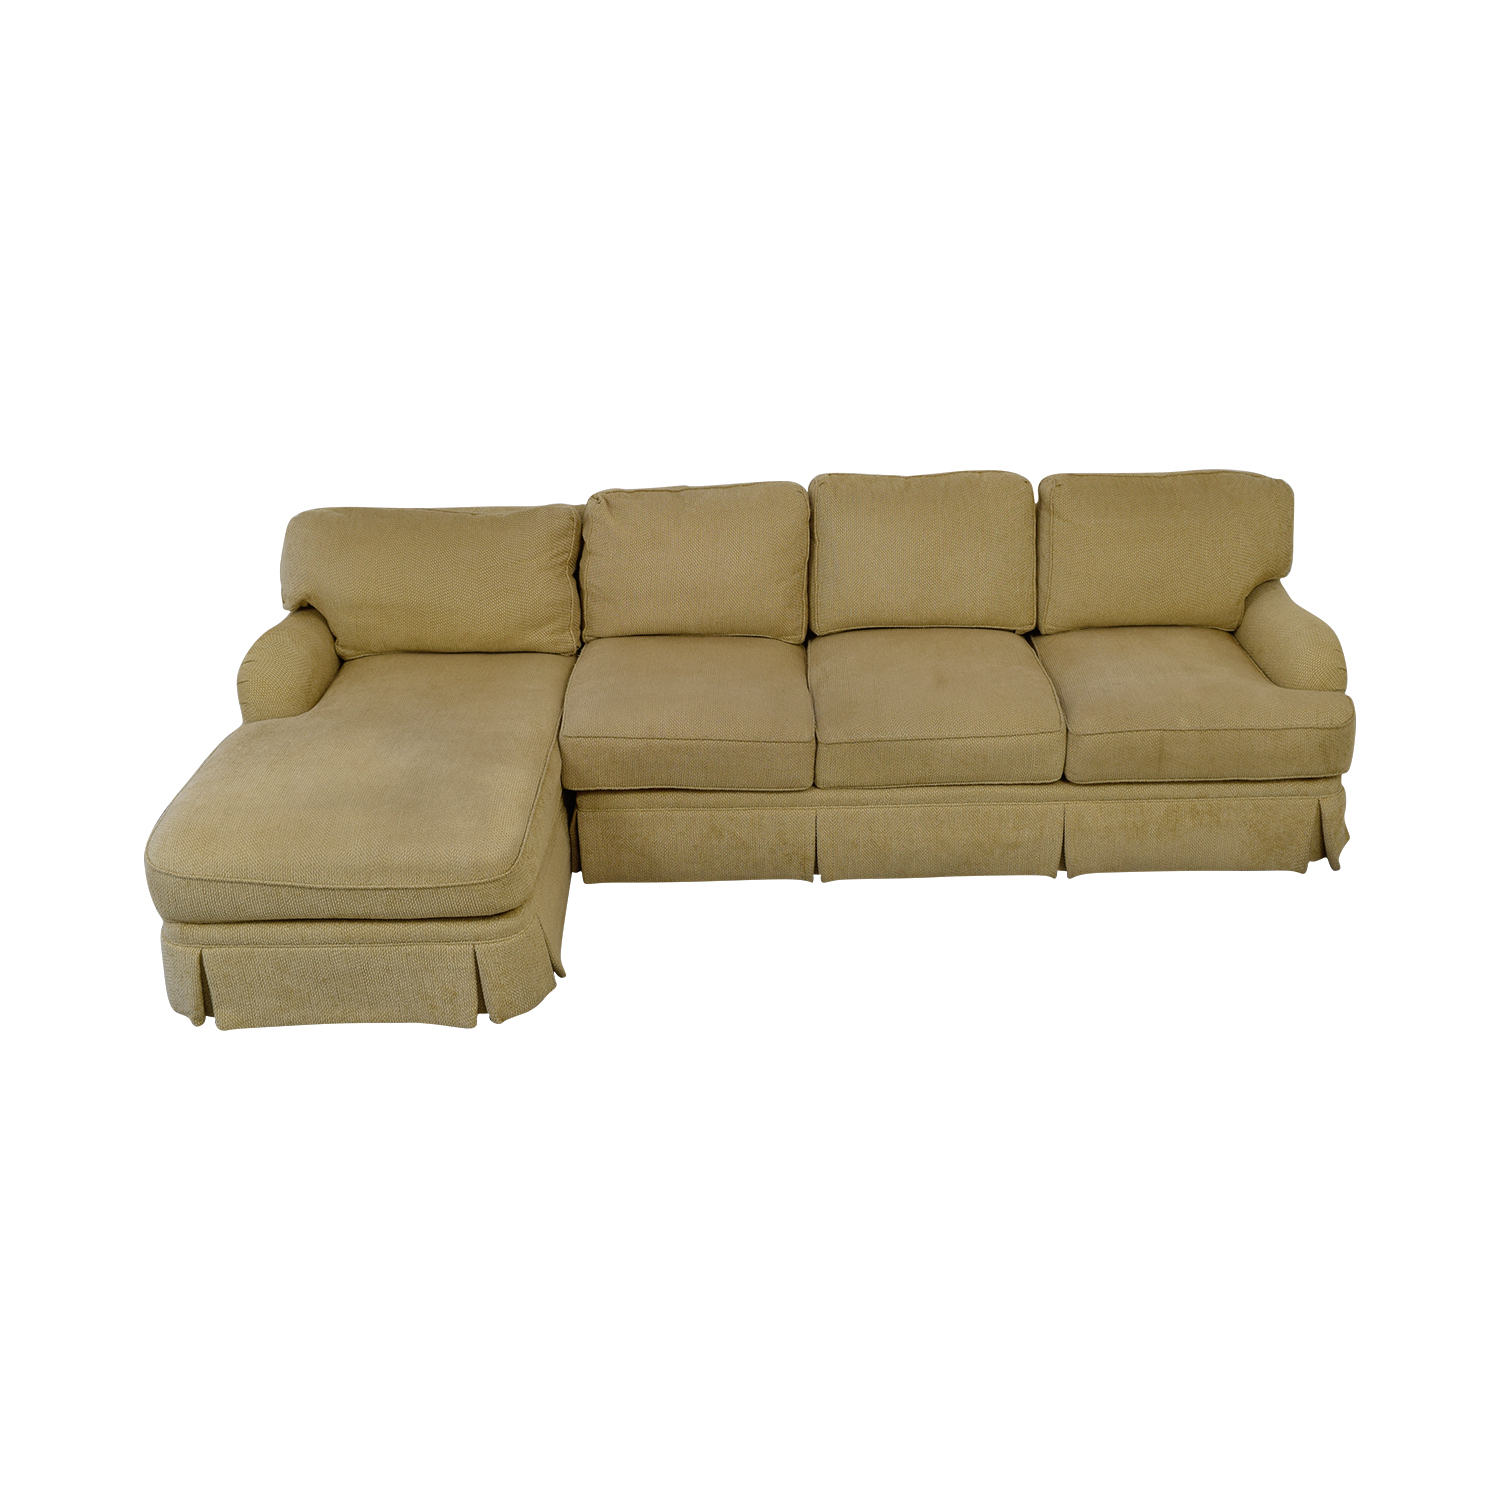 C R Laine C R Laine Beige Skirted Chaise Sectional price